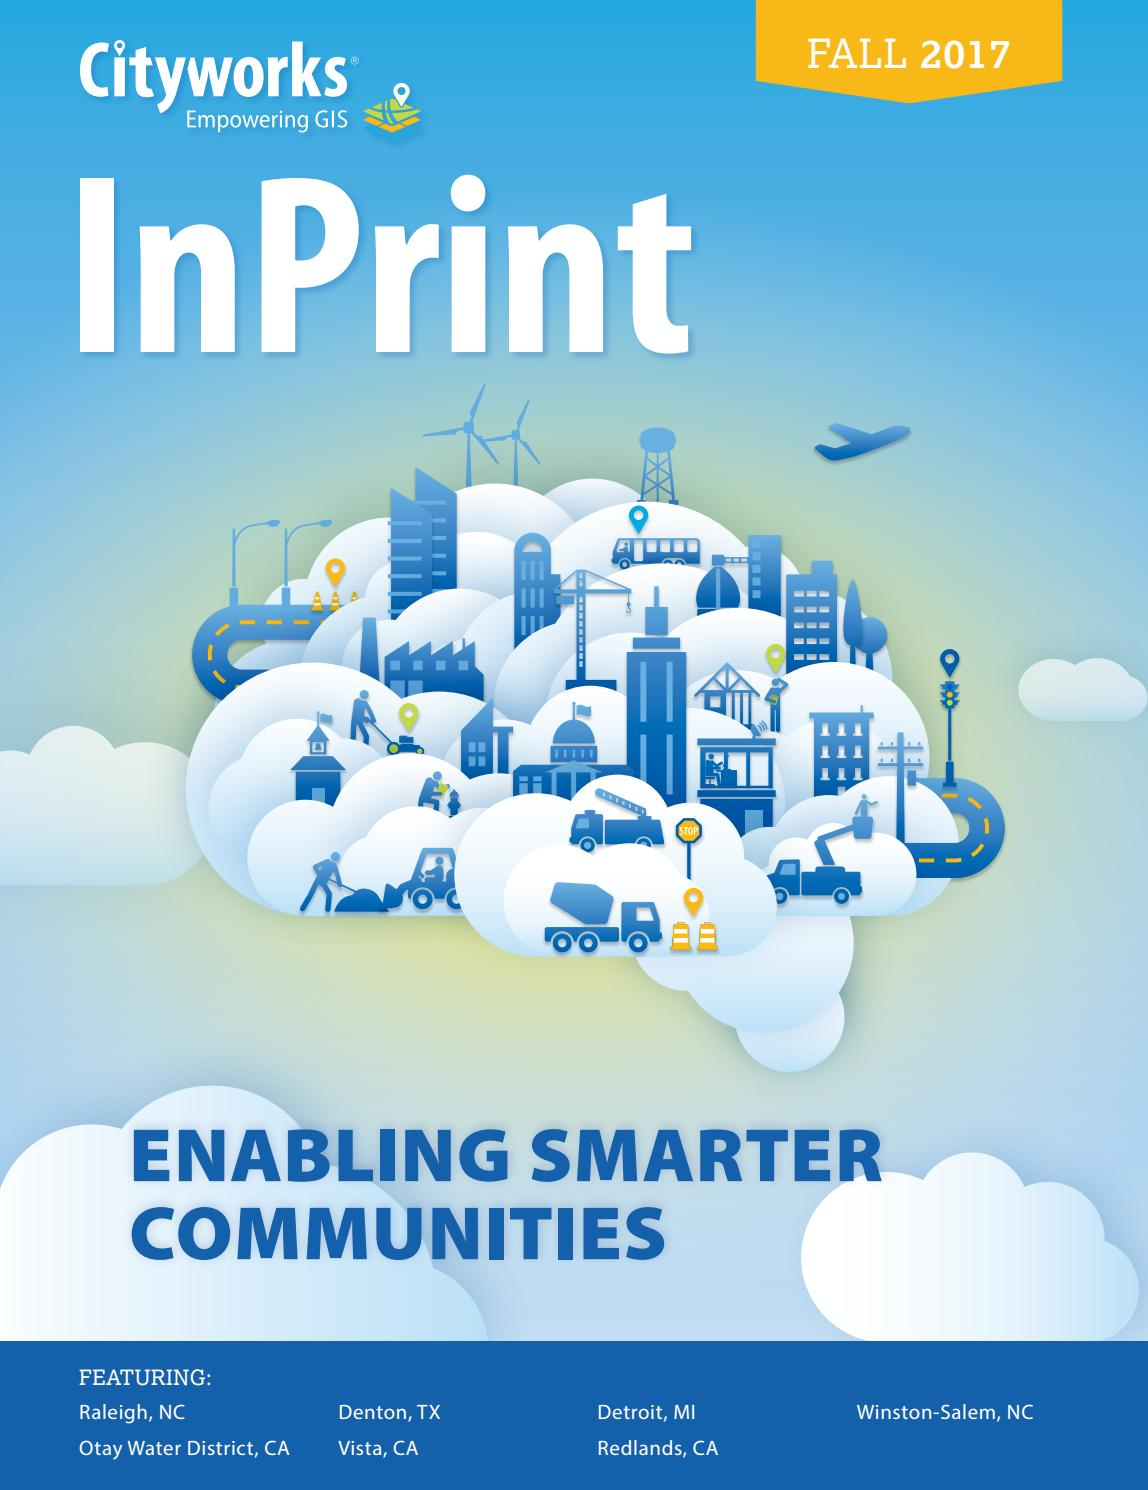 Cityworks InPrint - Fall 2017 by Cityworks | Azteca Systems